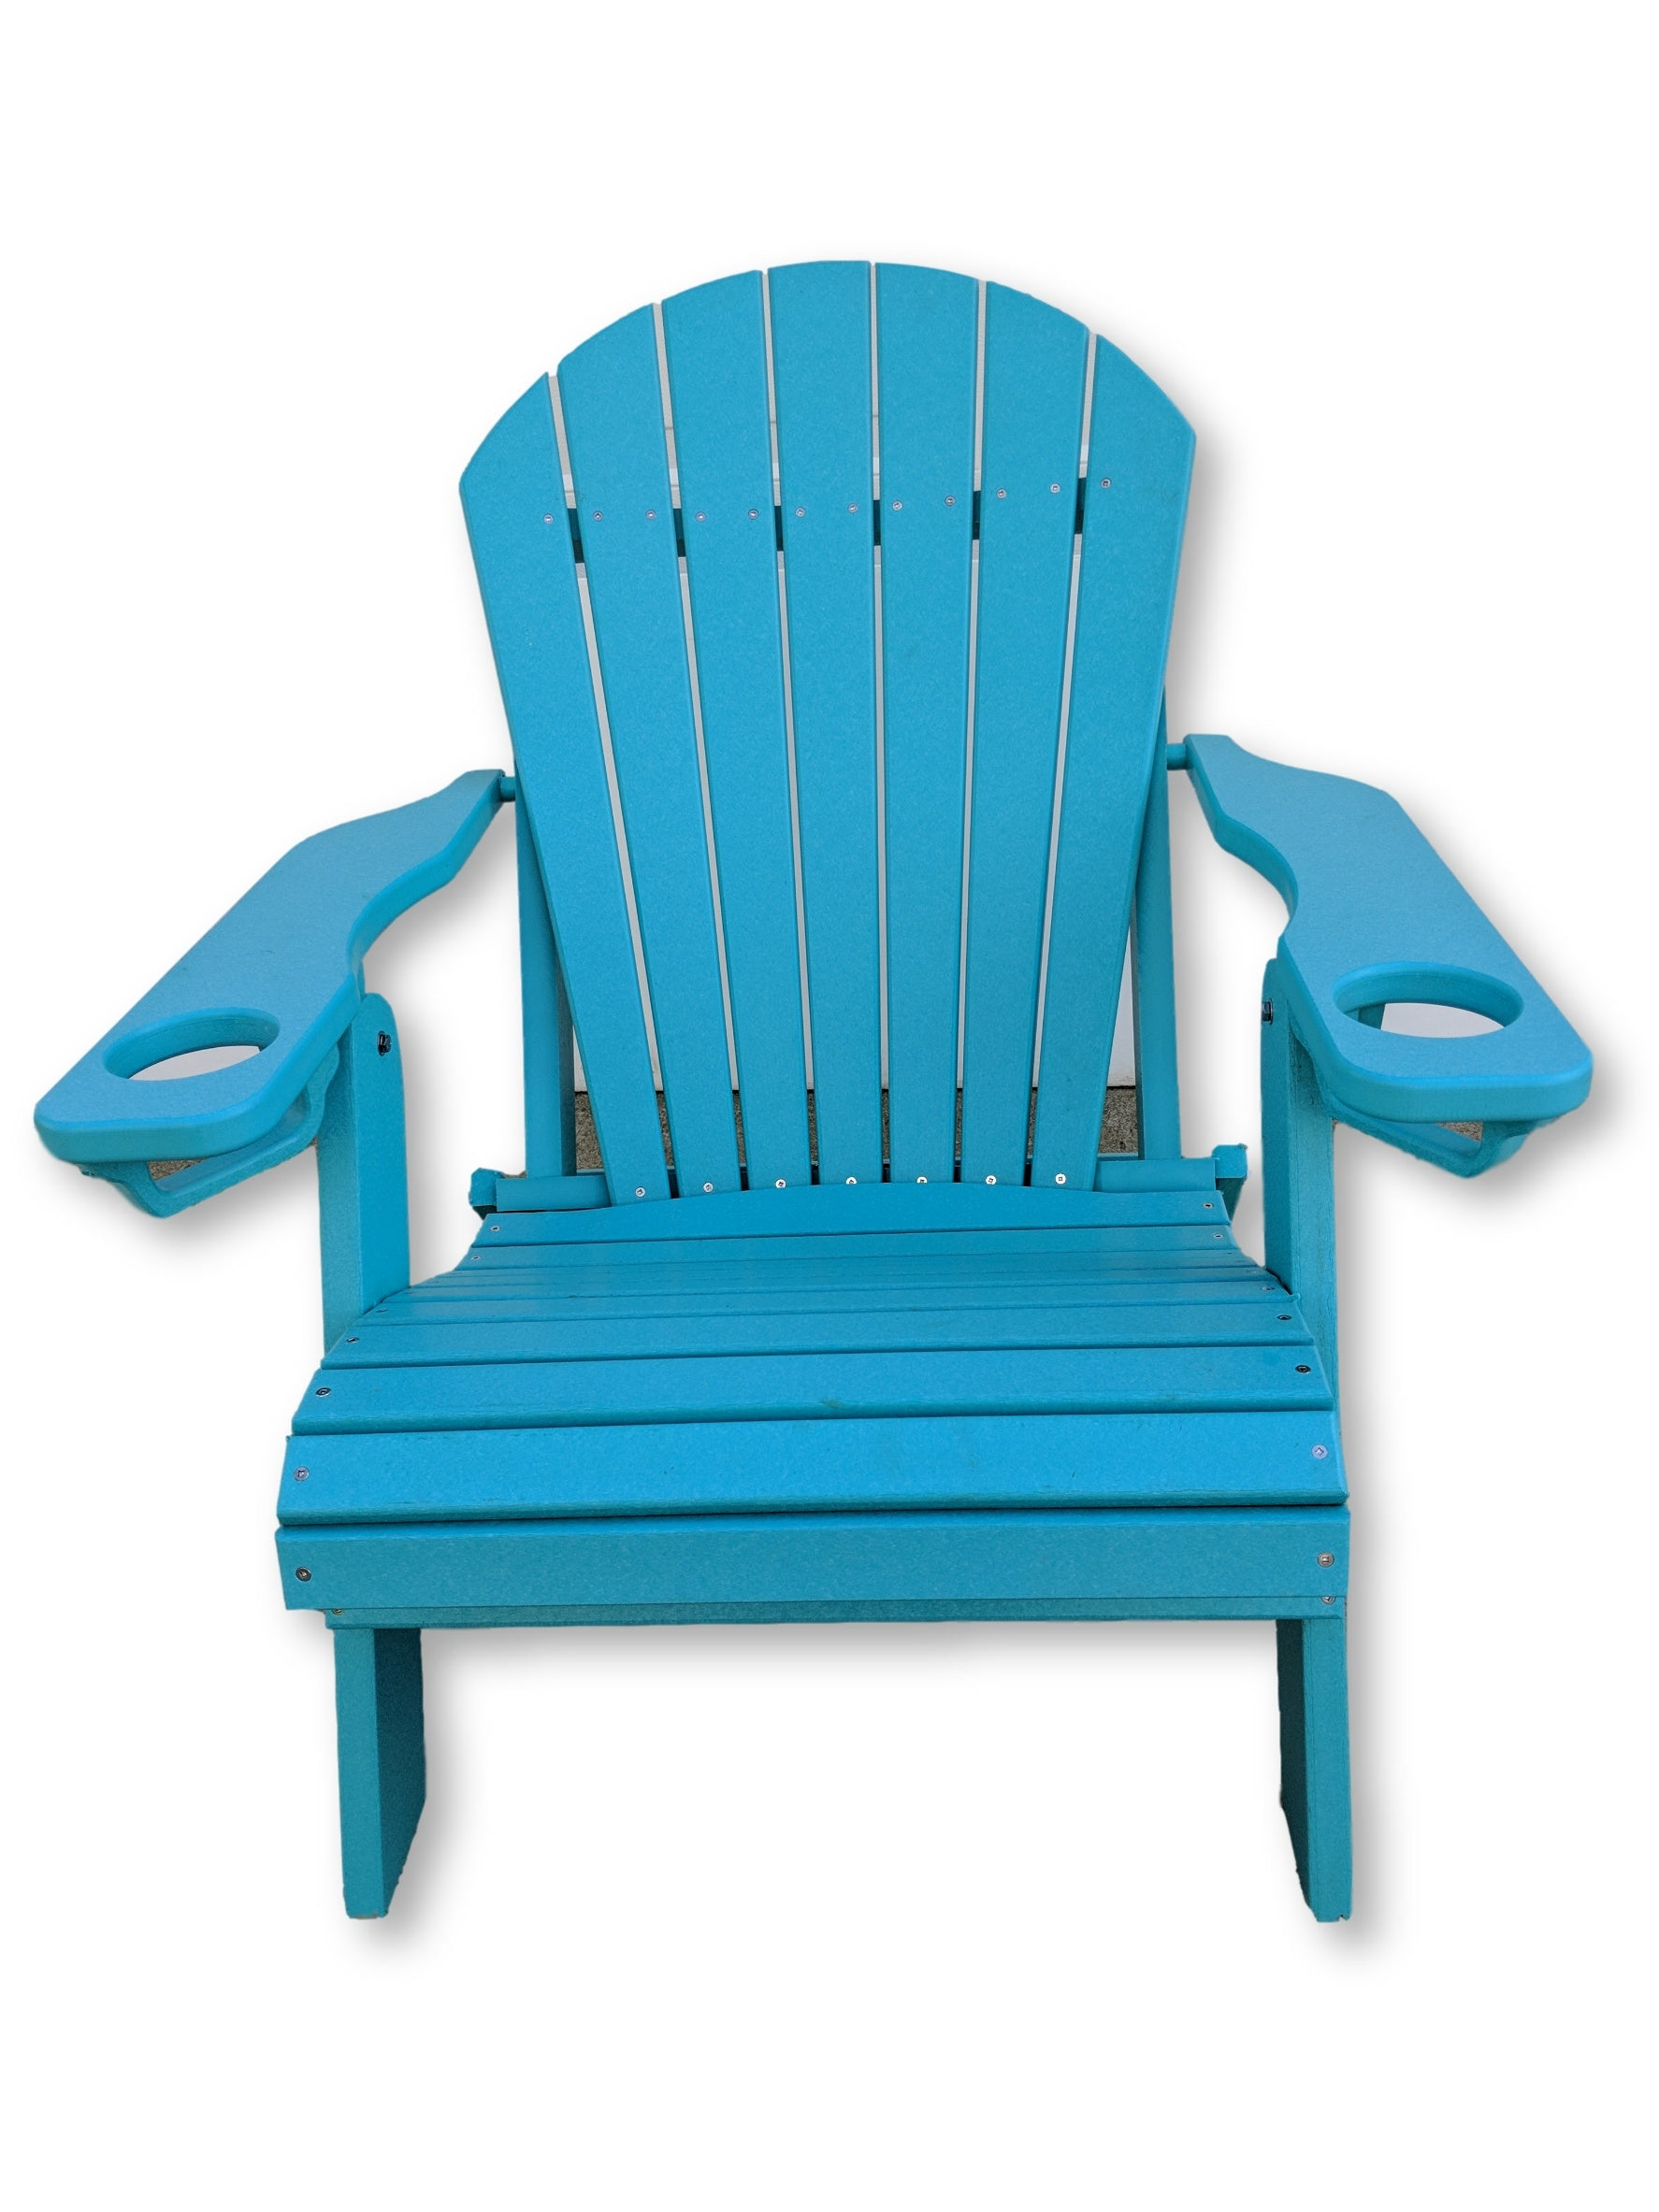 Aruba Blue Folding Adirondack Chair with Cup Holders